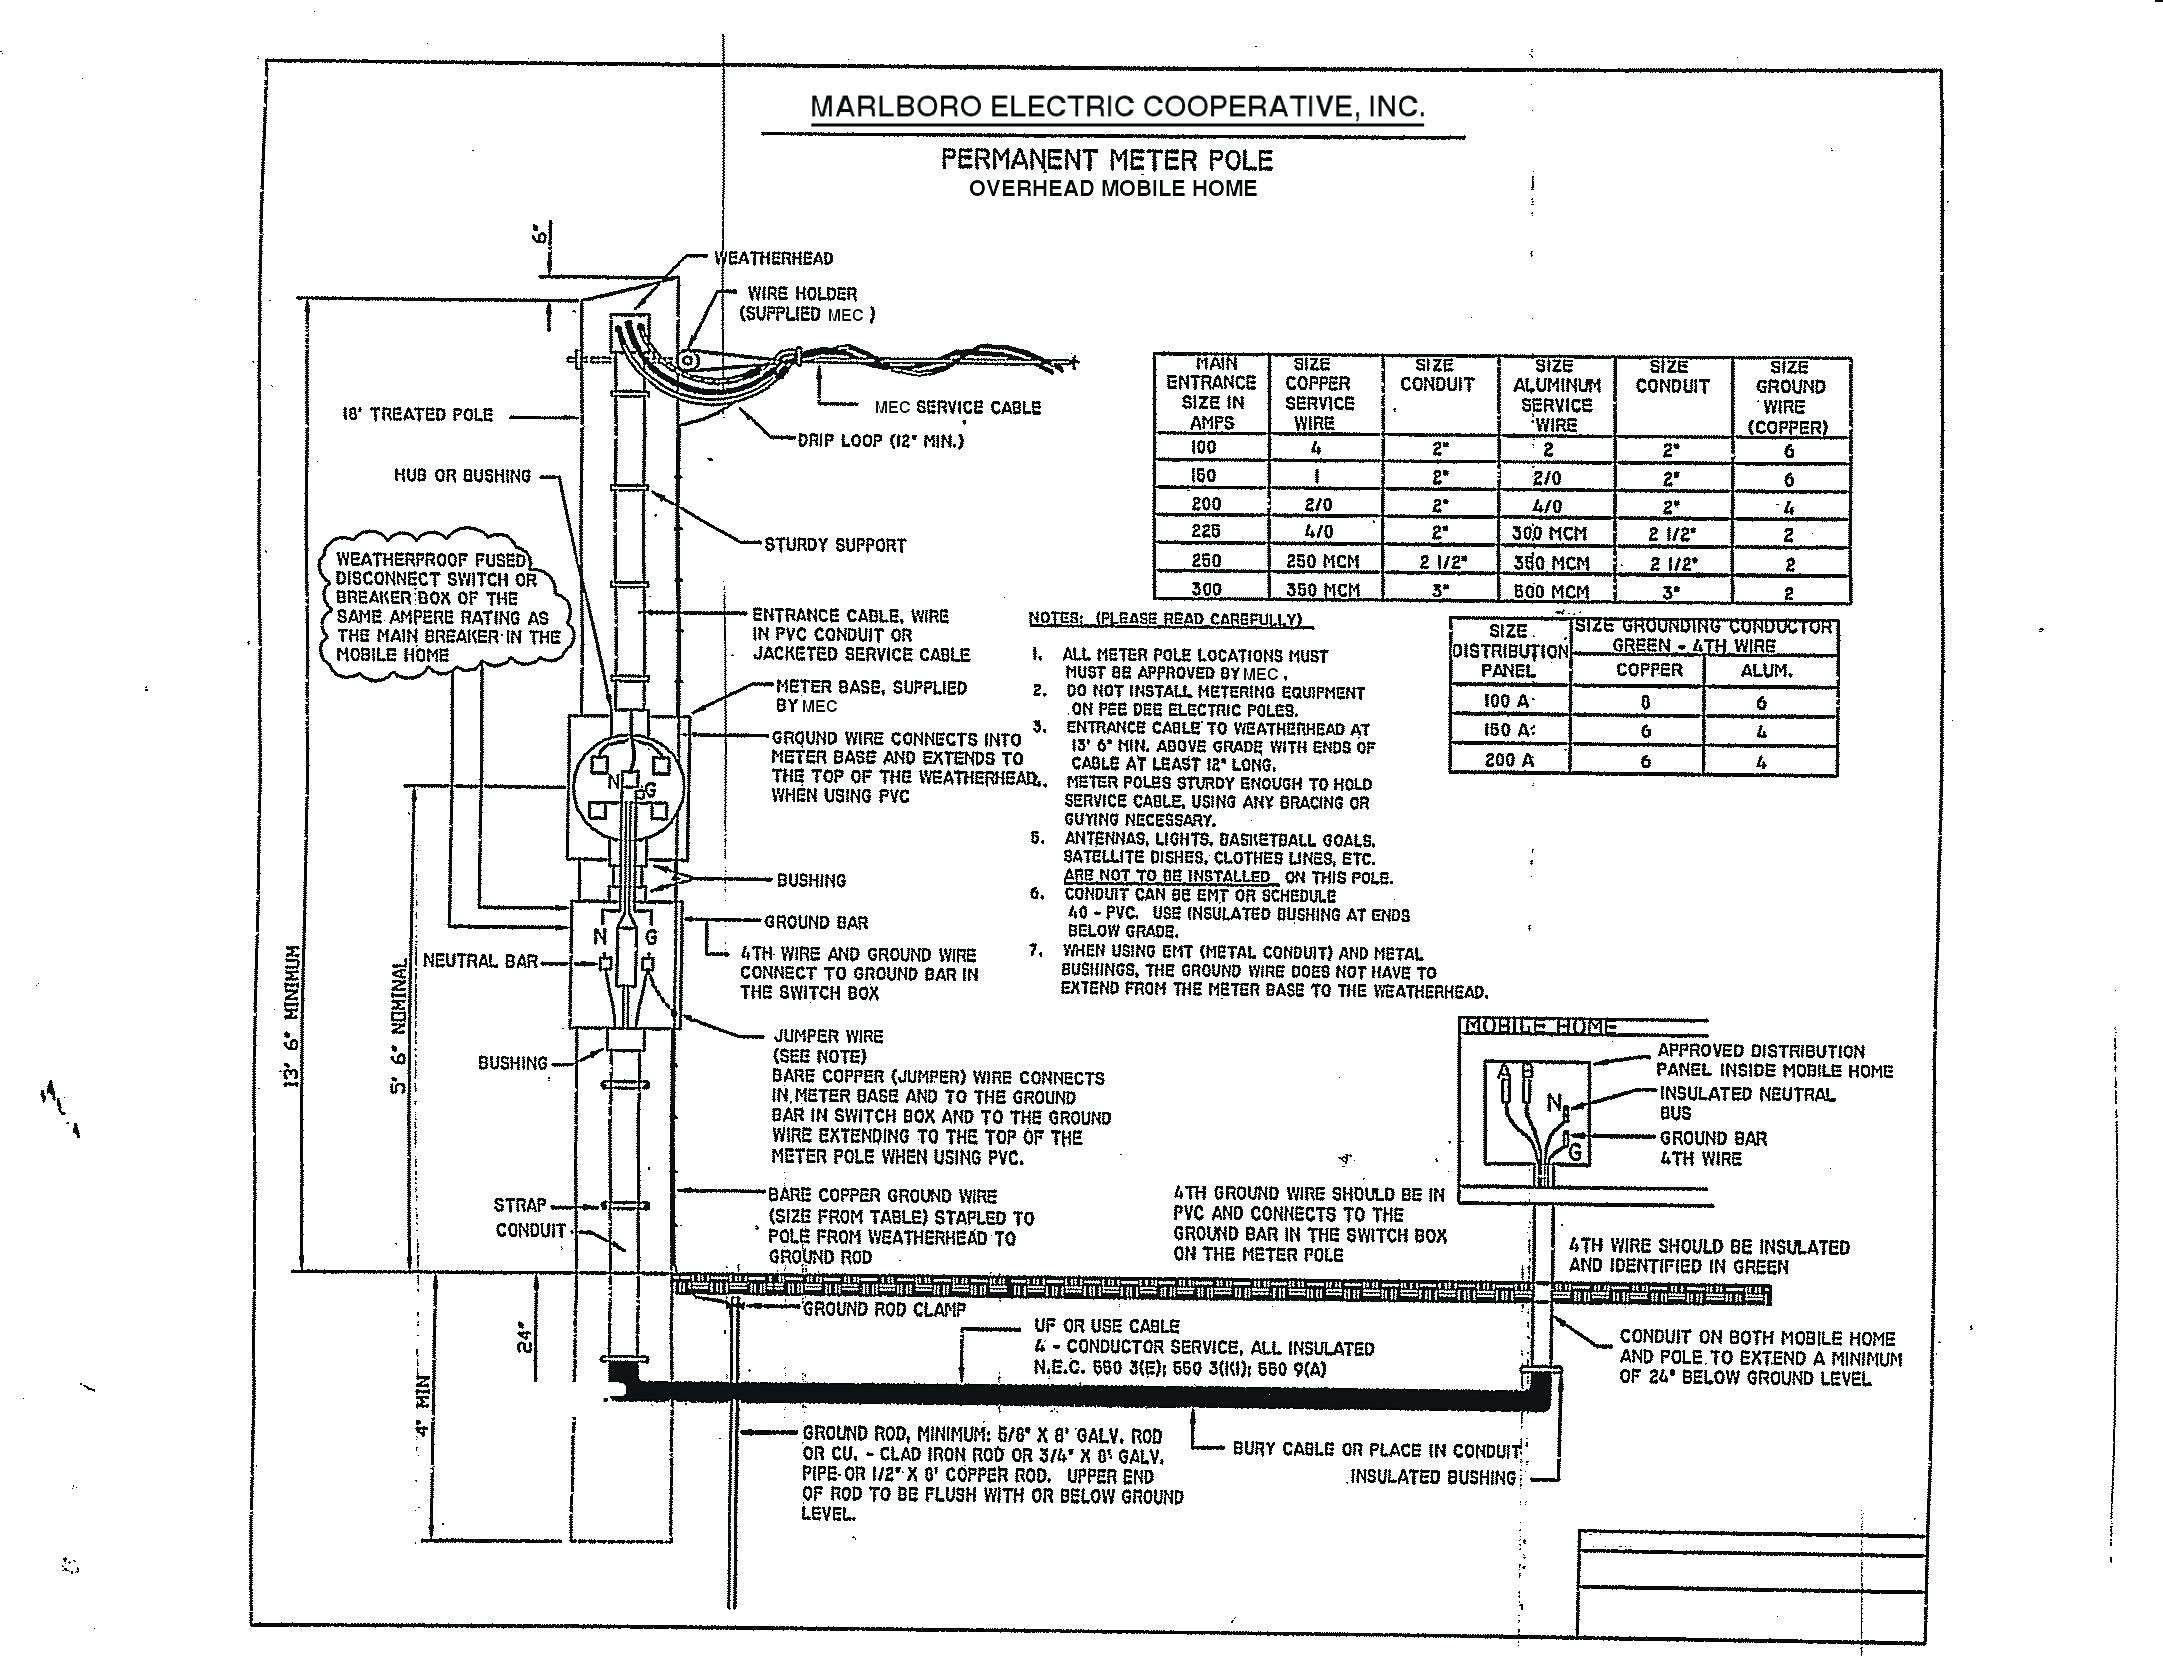 2000 skyline manufactured home wiring diagram auto electrical mobile home  wiring size 2000 skyline manufactured home